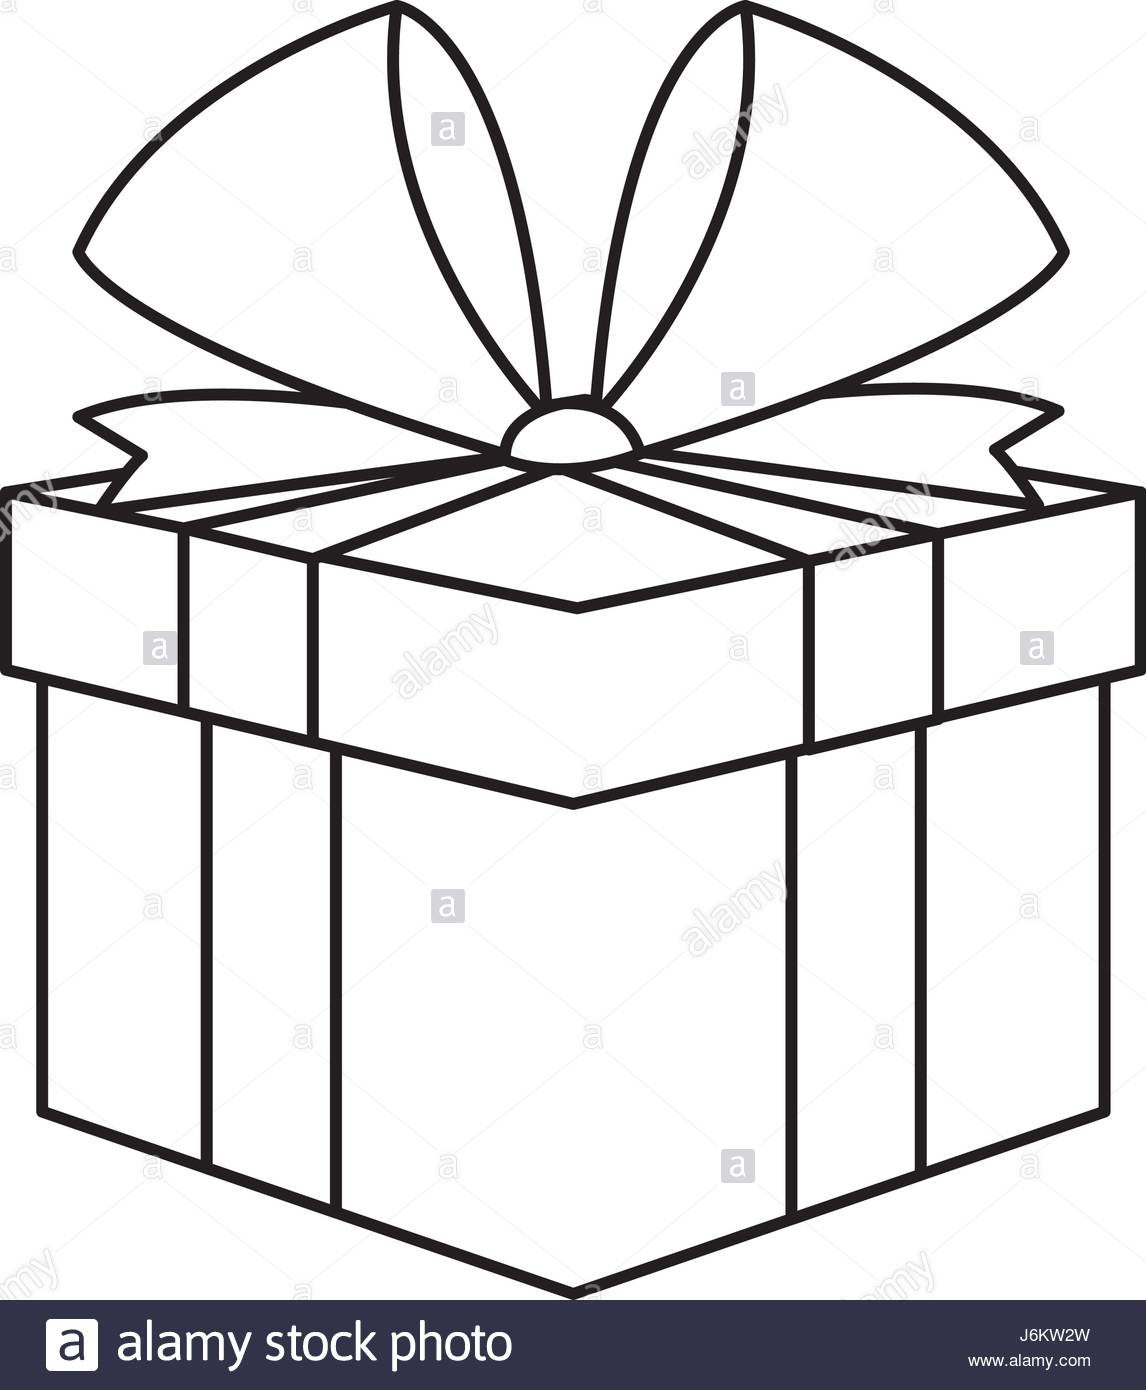 1146x1390 Christmas Present Box Gift Ribbon Decoration Outline Stock Vector